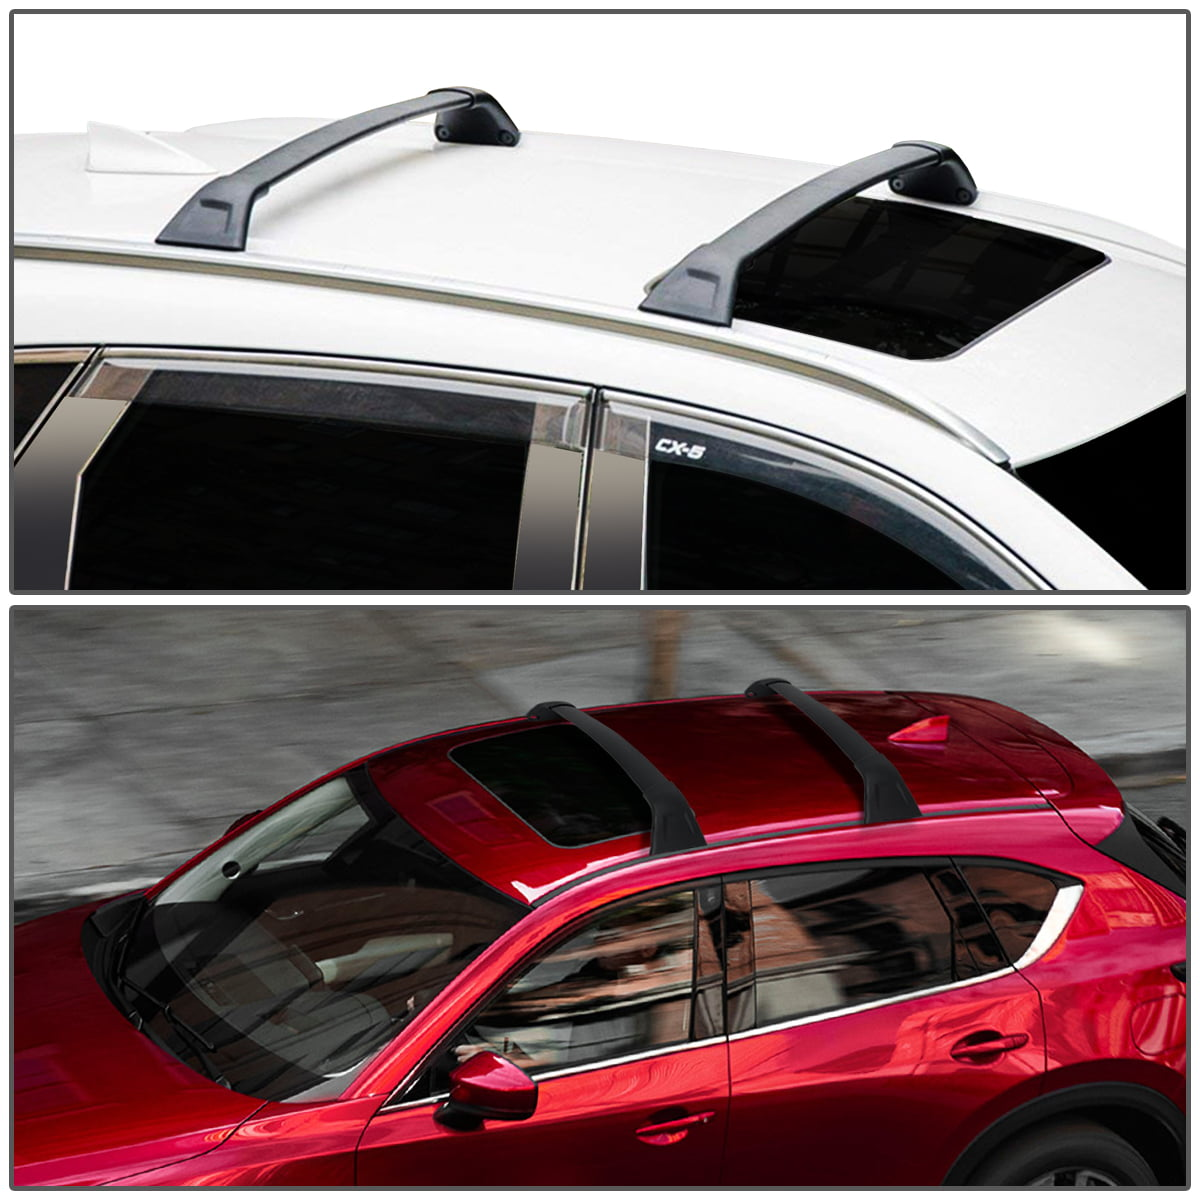 MOSTPLUS Roof Rack Cross Bar Rail Compatible with 2017 2018 Mazda CX5 CX-5 Cargo Racks Rooftop Luggage Canoe Kayak Carrier Rack